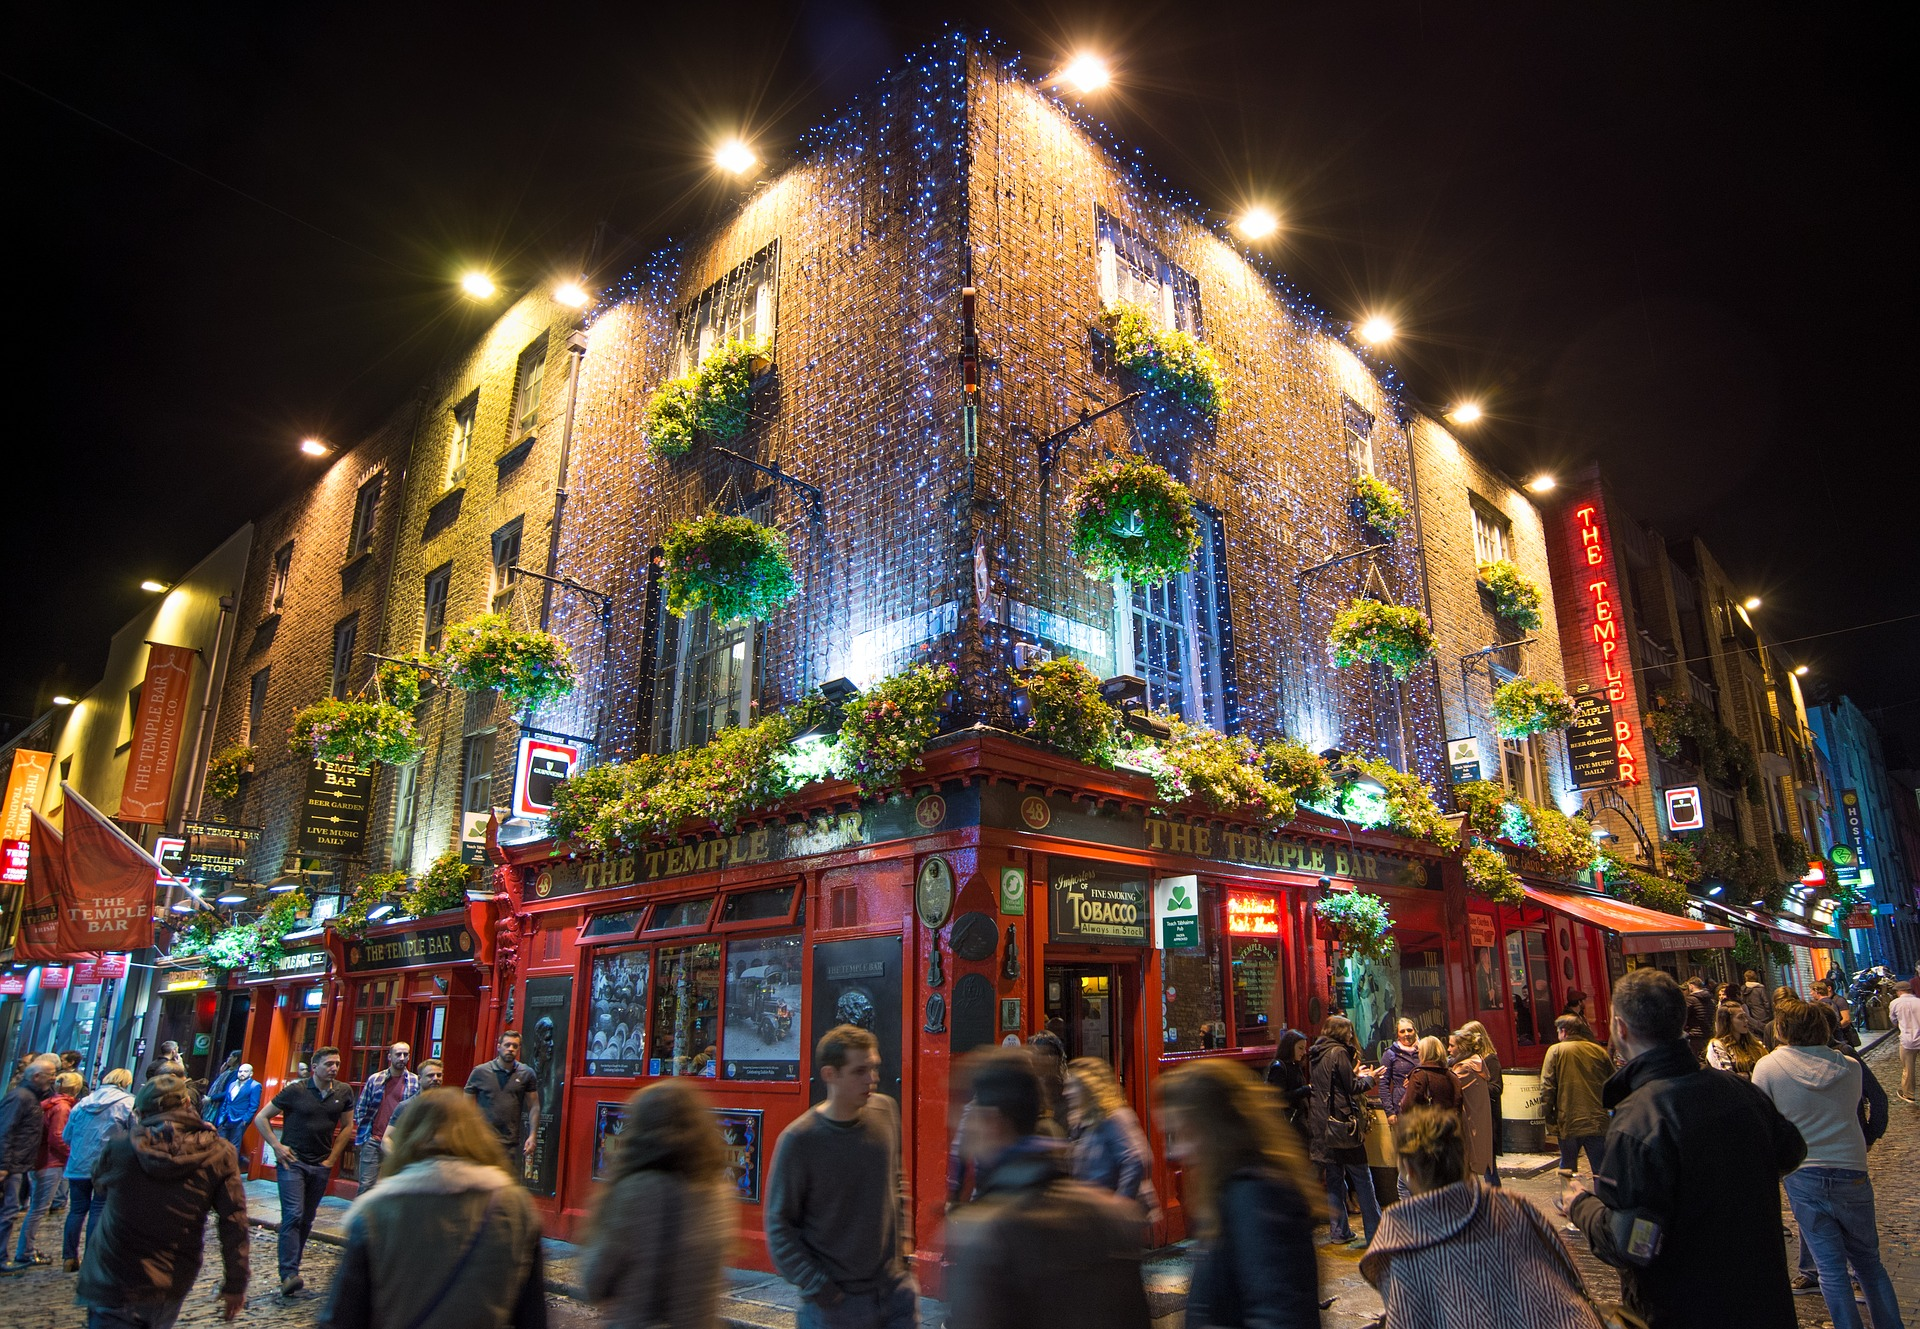 Image of Temple Bar area in Dublin